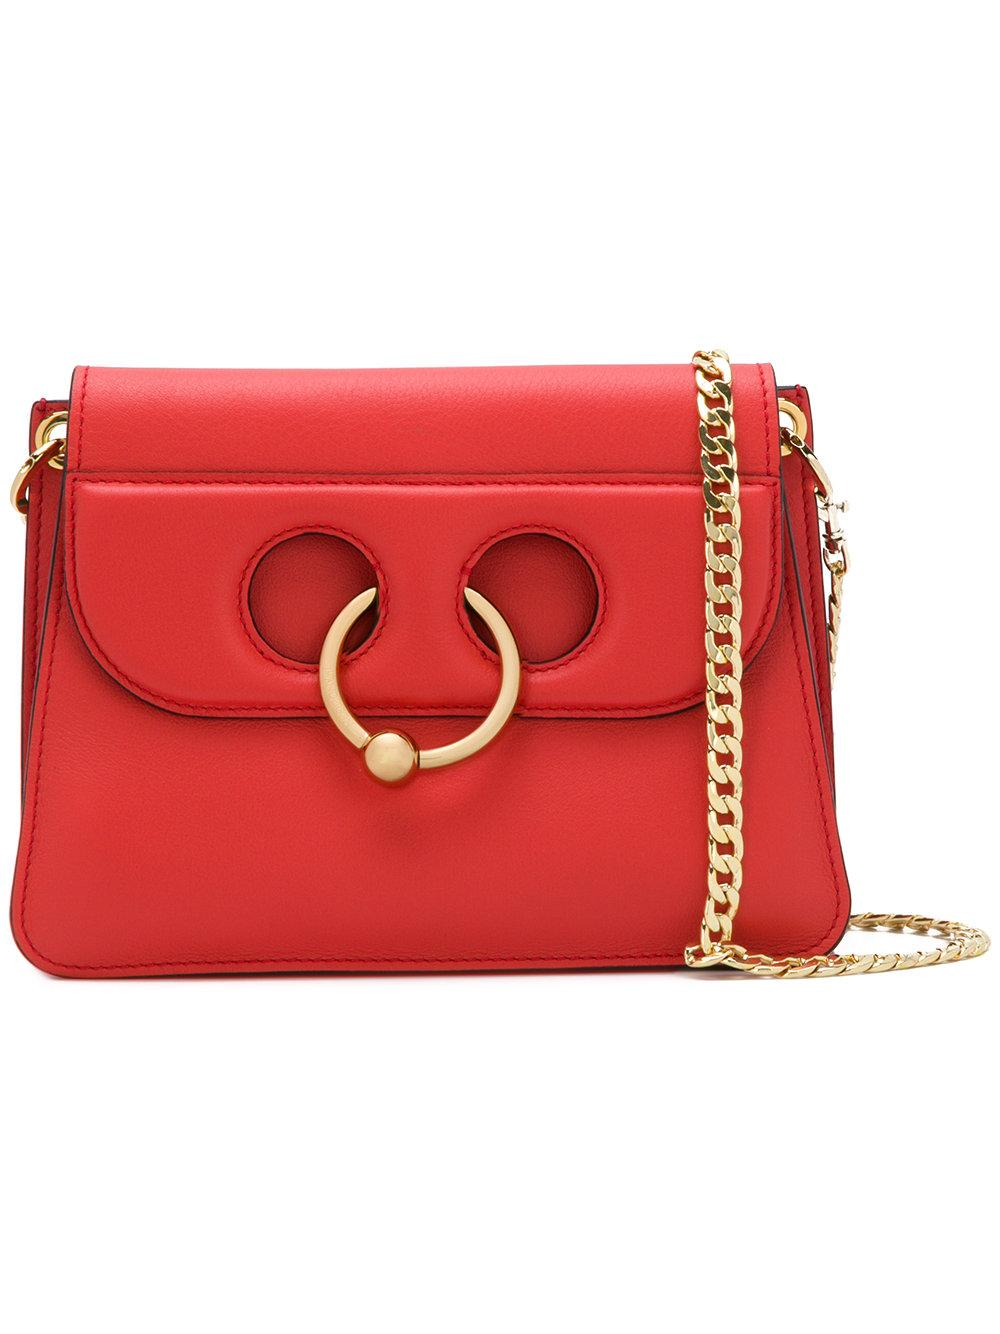 Jw Anderson Red